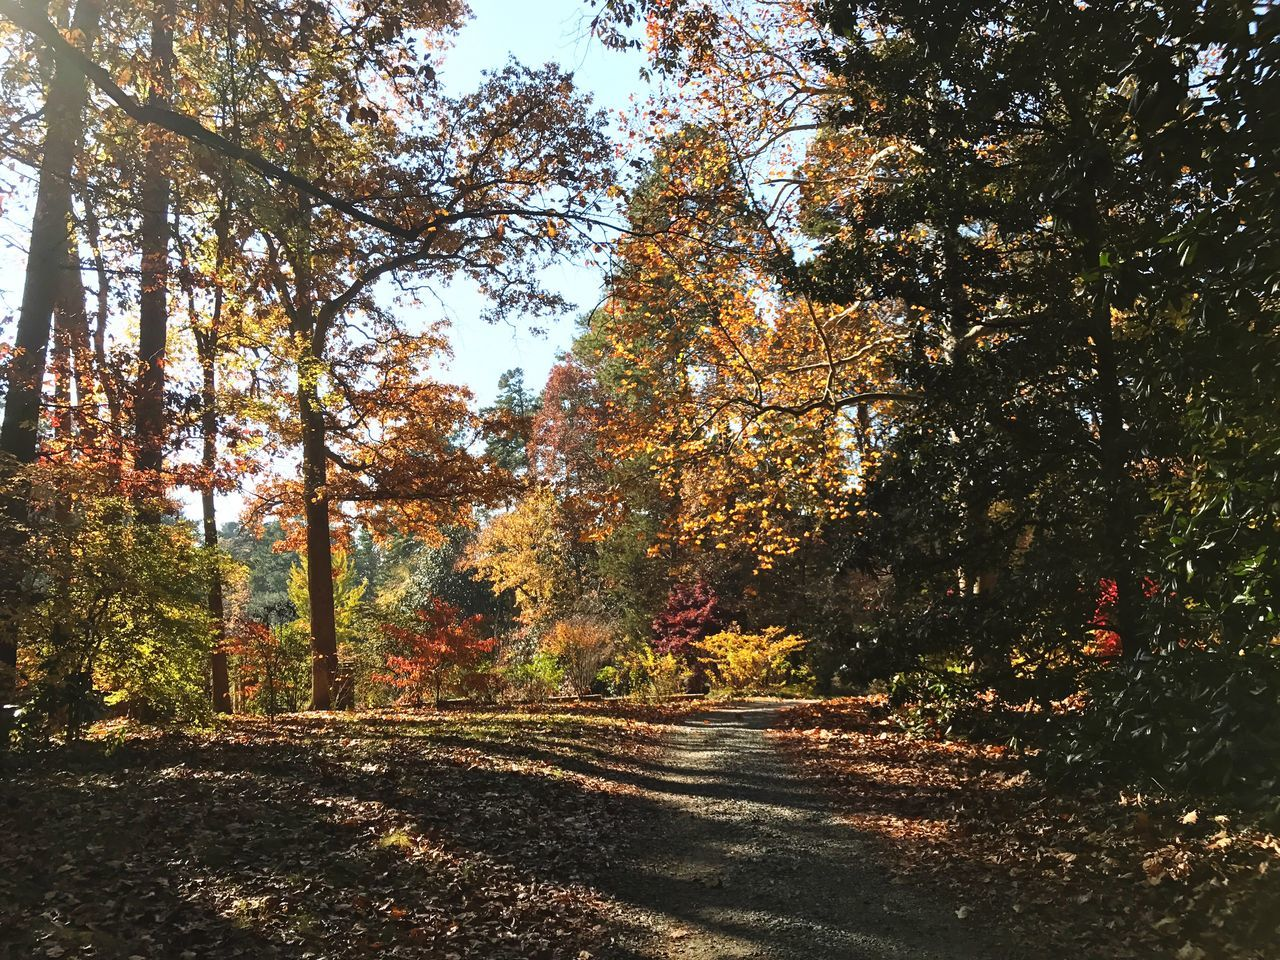 Happy Thanksgiving. I'm thankful for this beautiful autumn day. Tree Autumn Change Nature Growth Leaf Beauty In Nature Scenics No People Outdoors Day Tranquility Tranquil Scene Sky